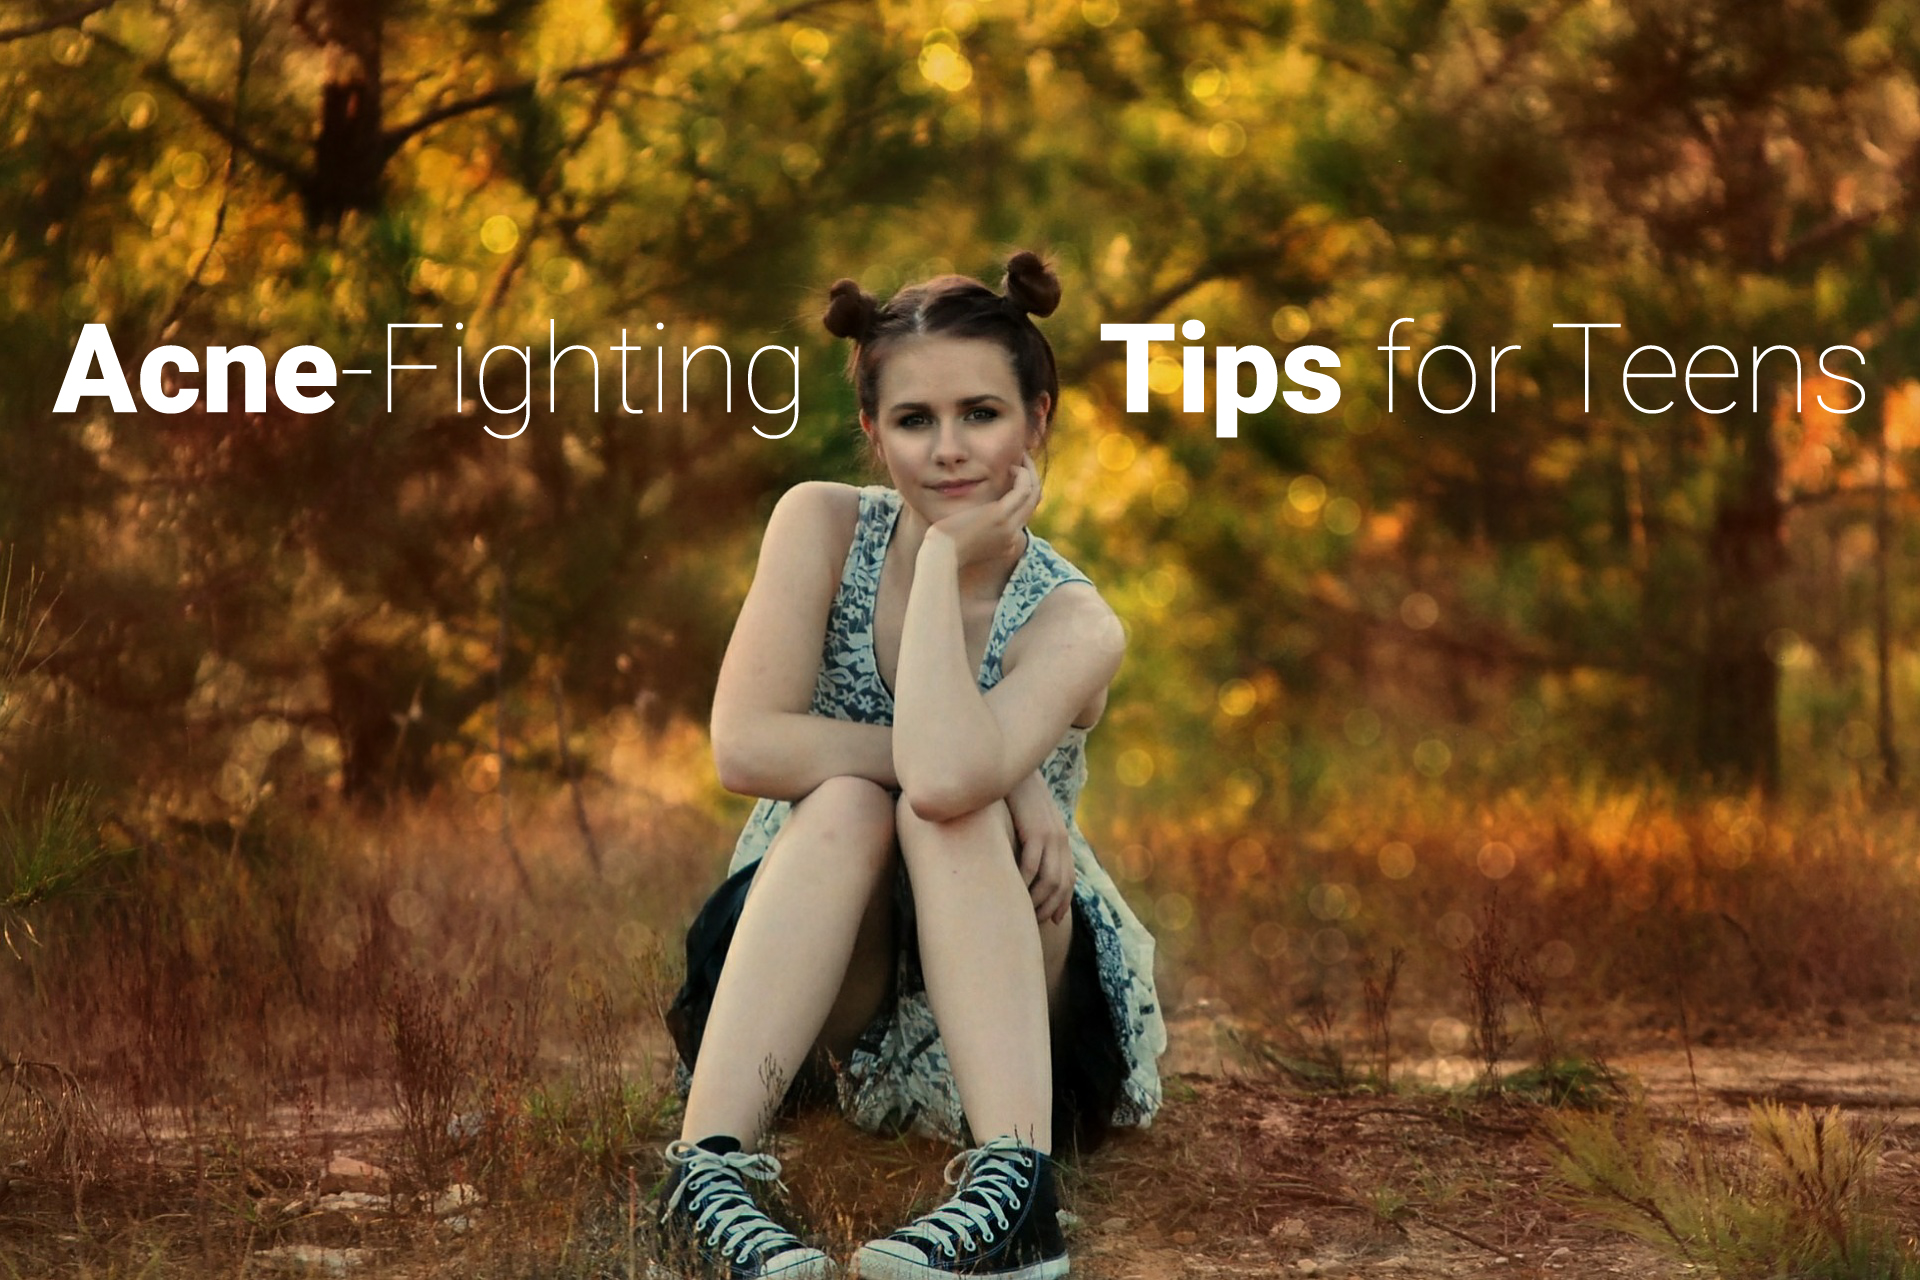 Acne fighting tips for teens